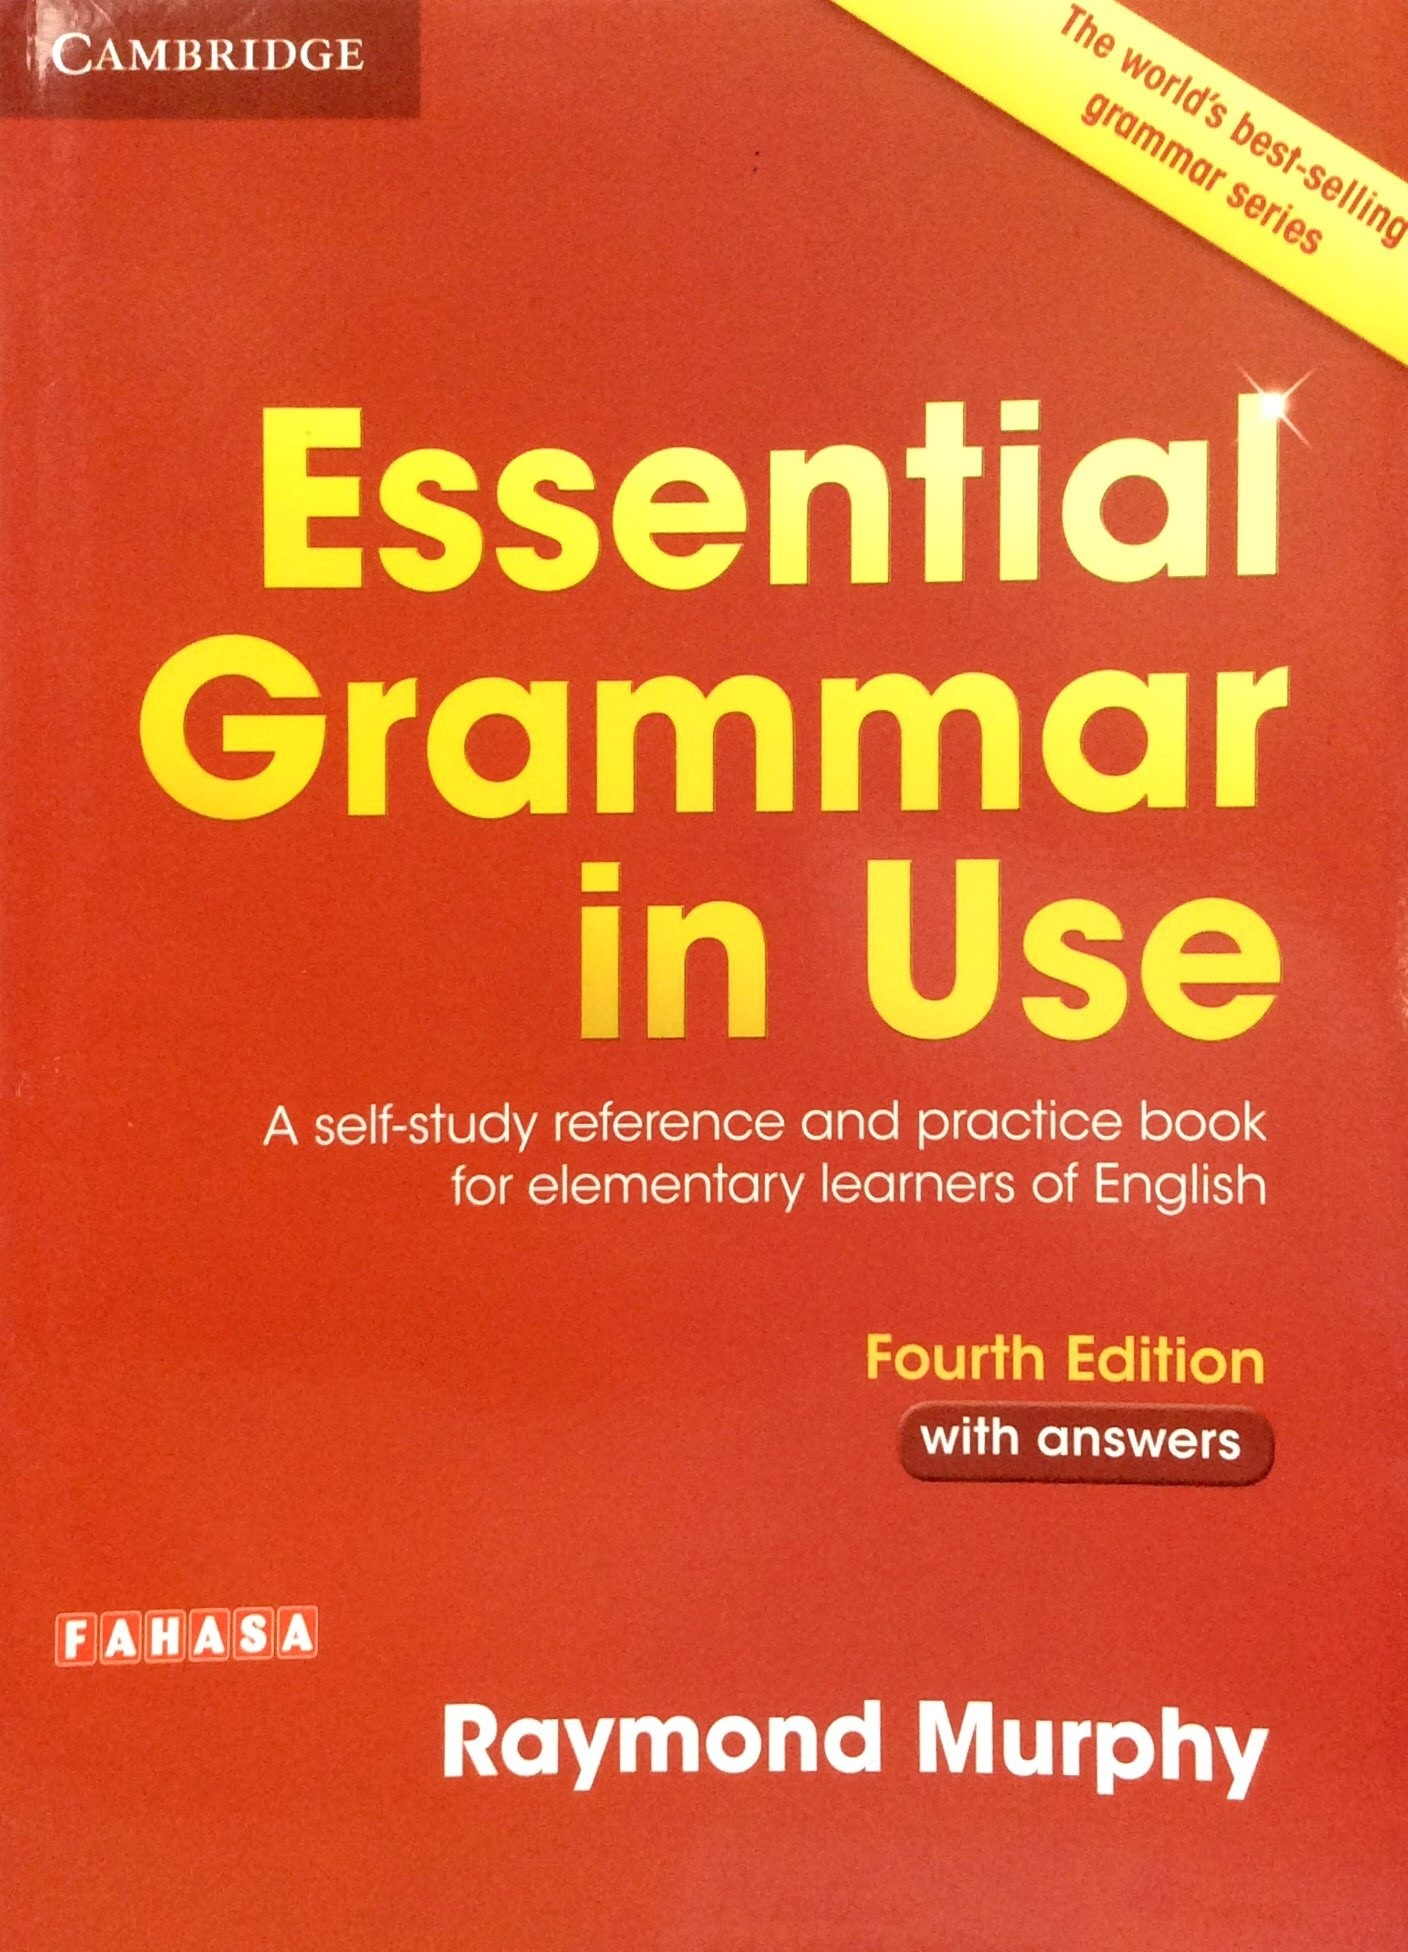 Essential Grammar in Use - Elementary